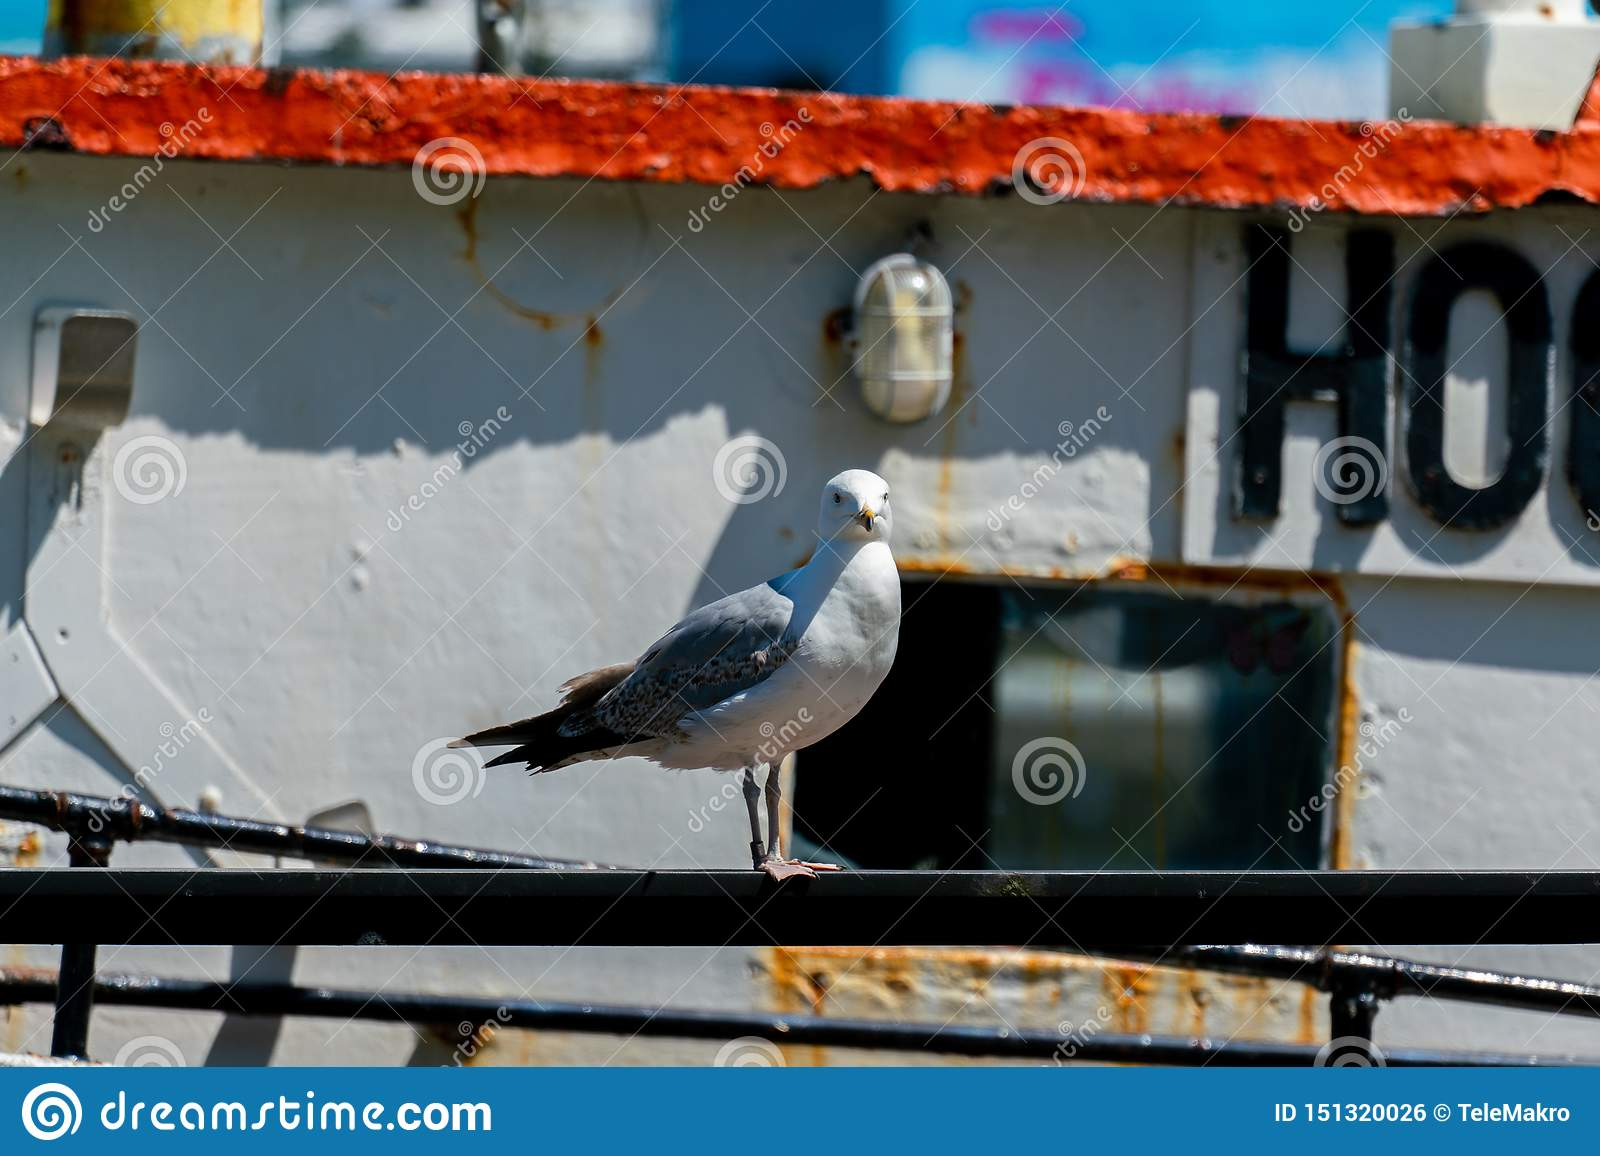 Potrait of a seagull on an old rusty ship